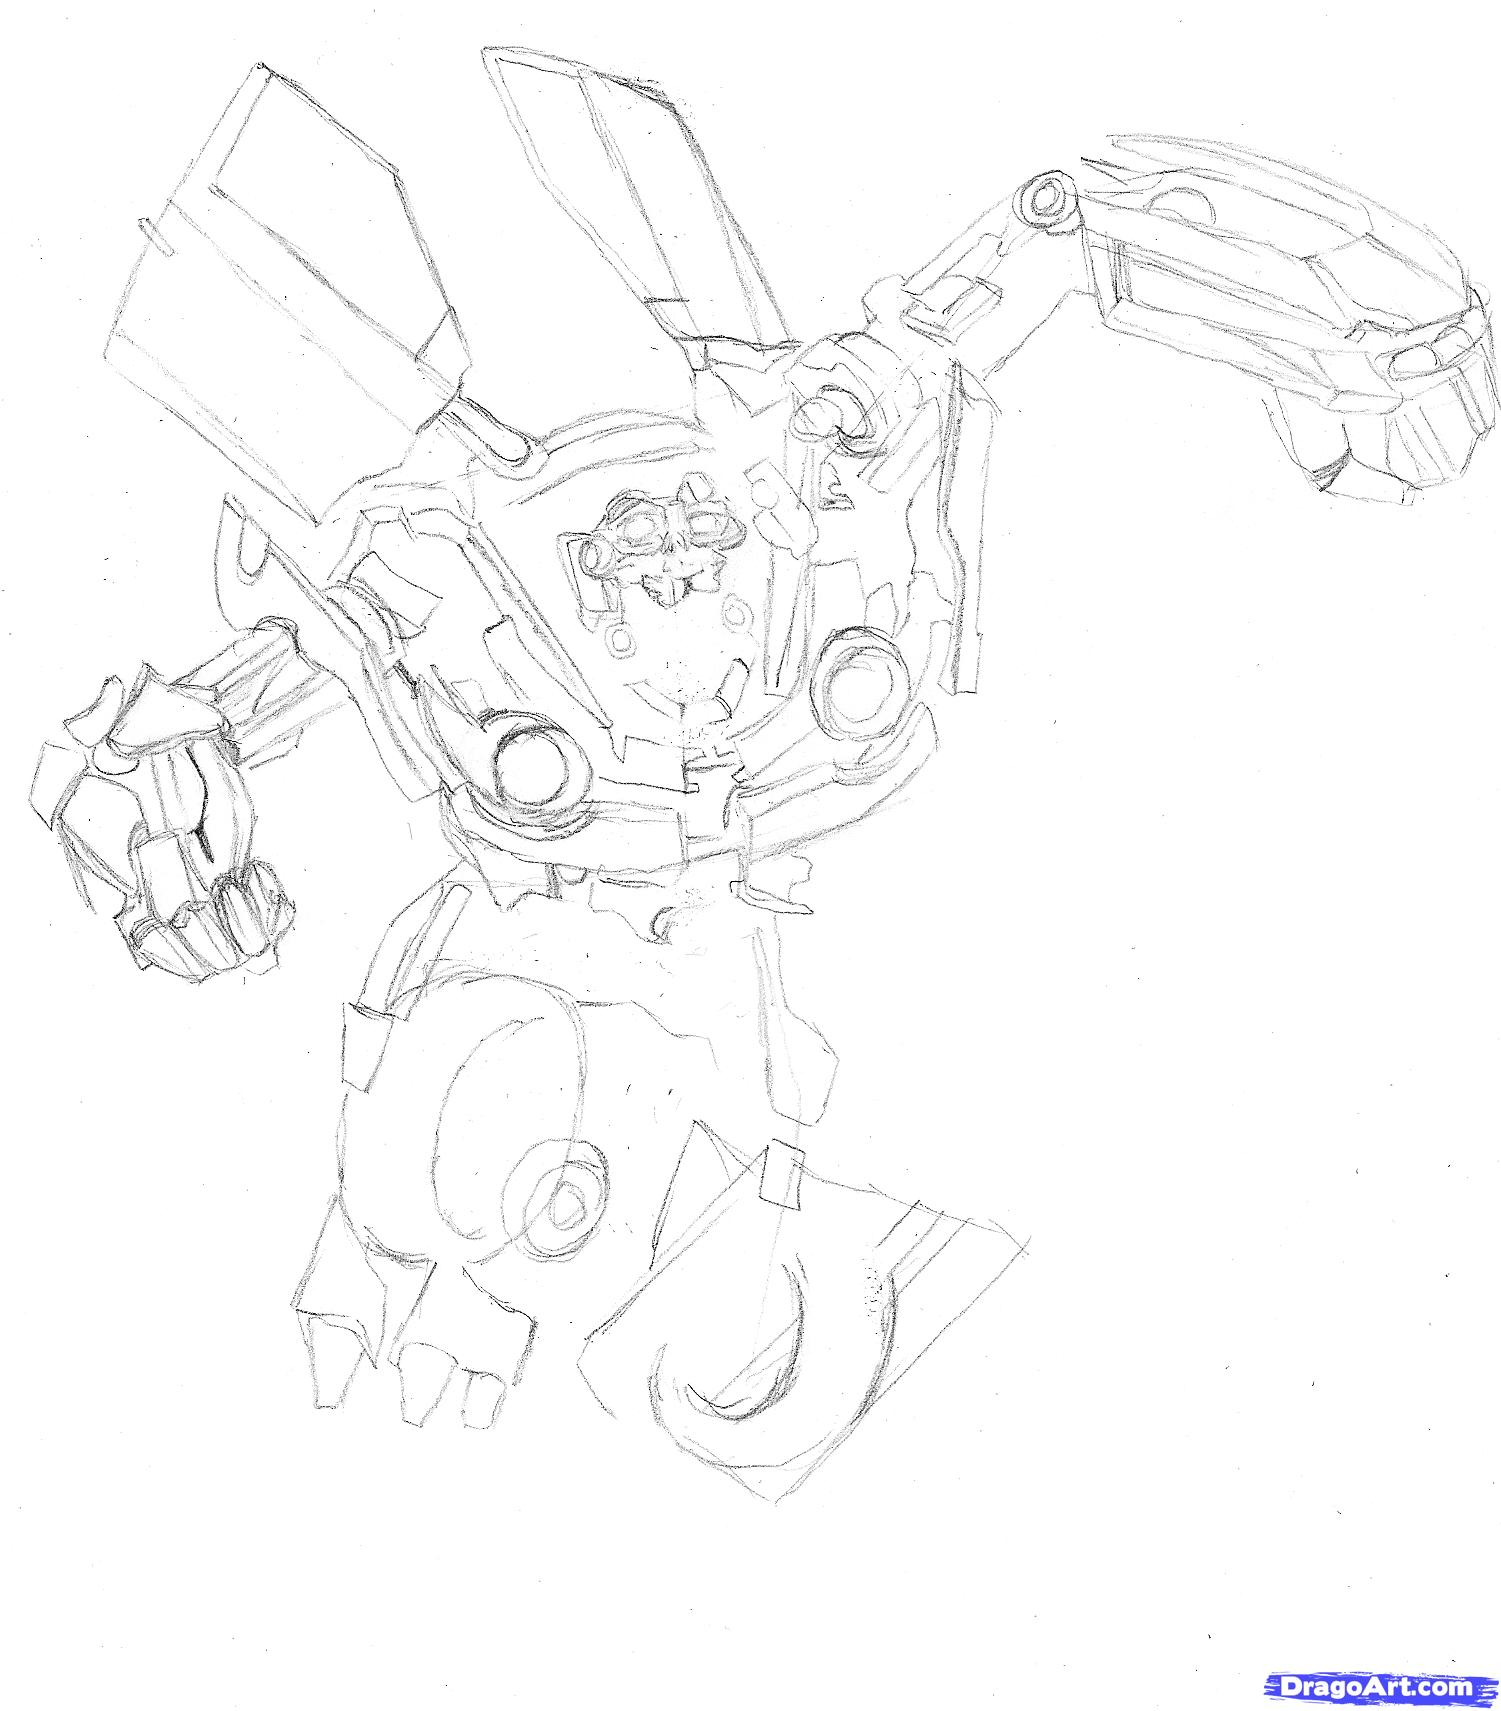 How to draw Megatron with a pencil step by step 6